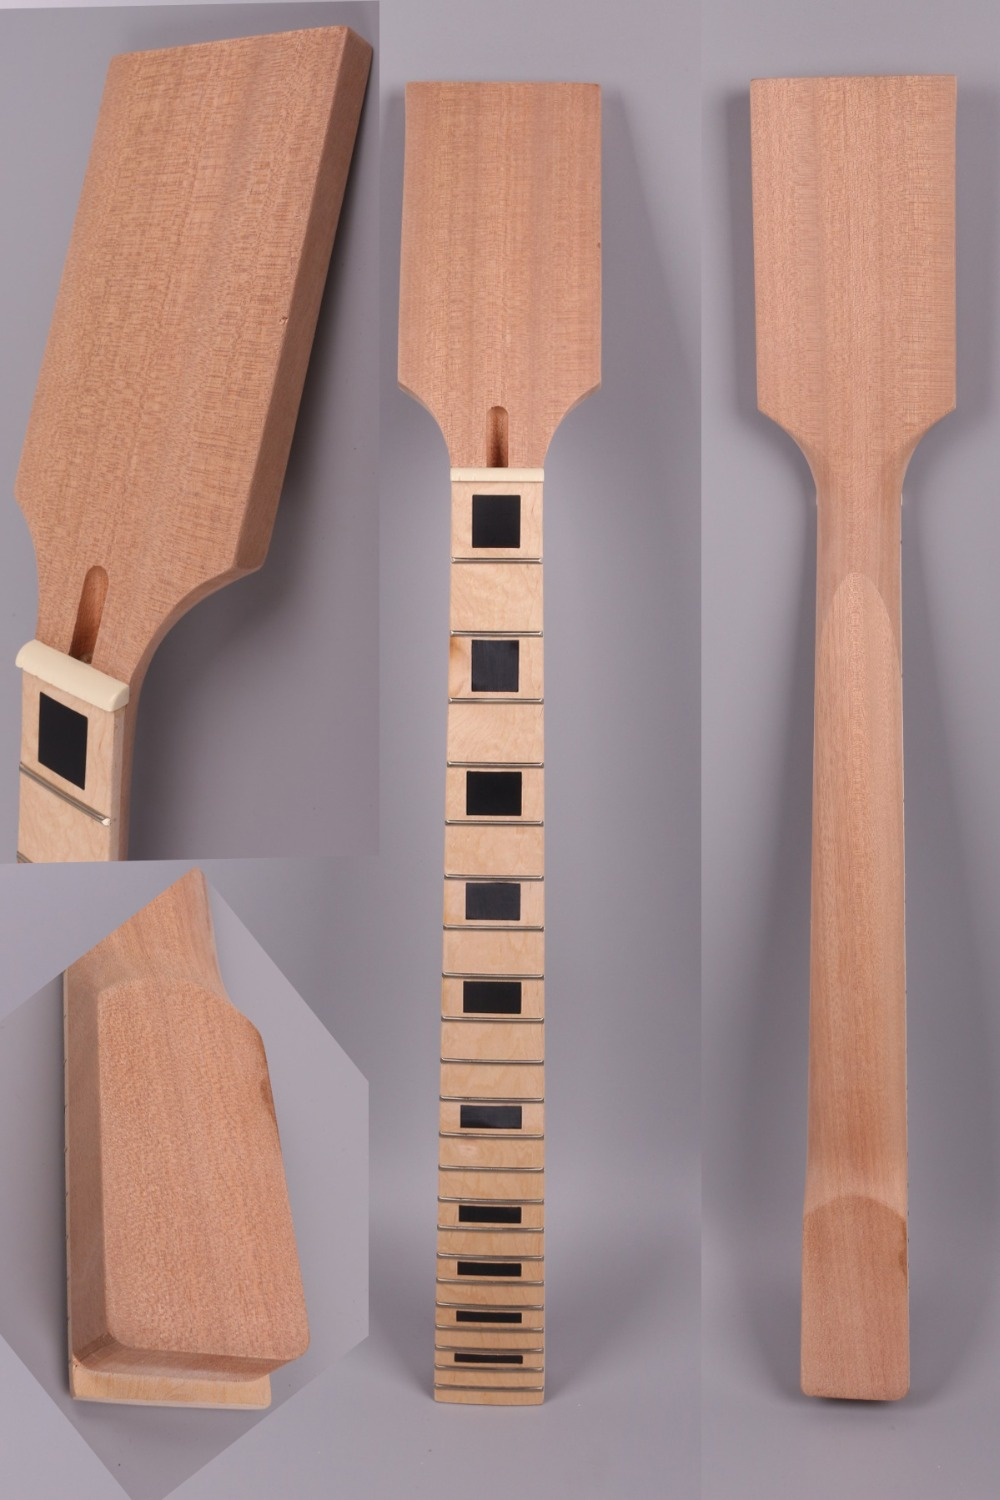 Yinfente Electric Guitar Neck 22 Fret 24.75 Inch Paddle Head Maple Fretboard Block Inlay electric guitar replacement neck #D3 2 set electric guitar neck paddle head maple 22 frets dot inlay unfinished